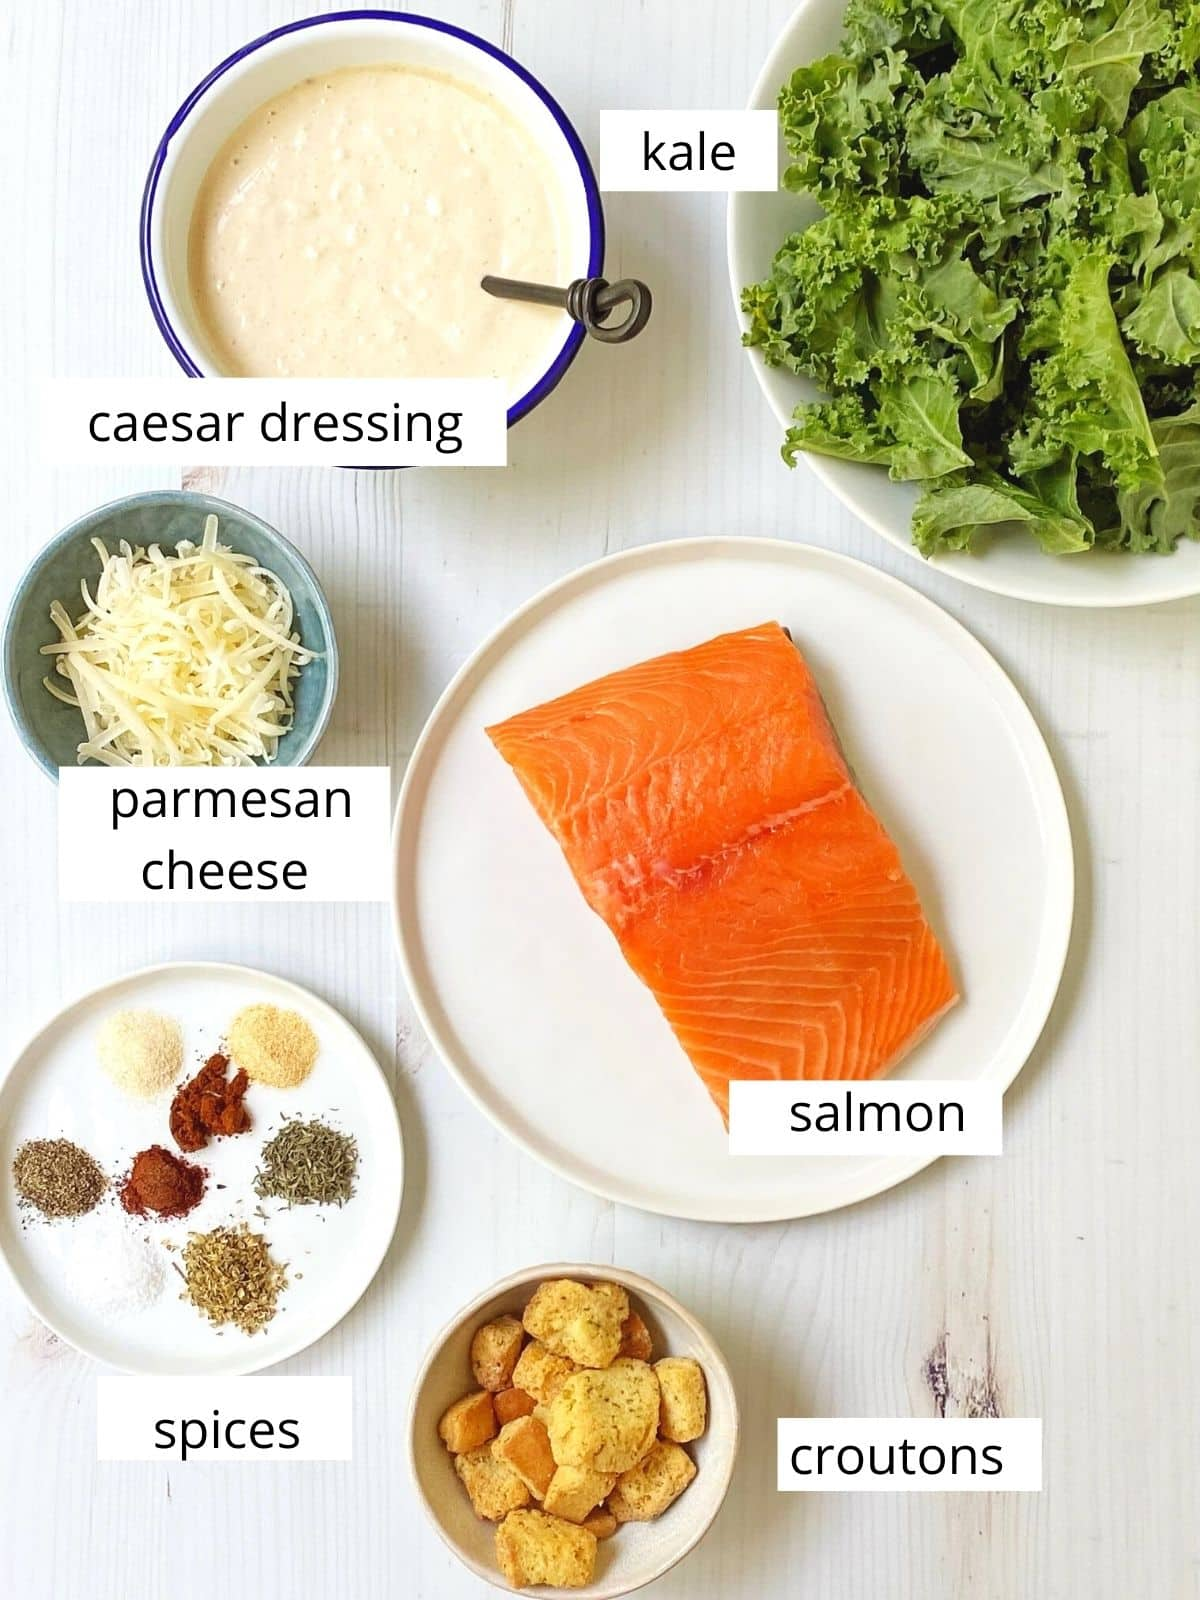 array of ingredients - kale, salmon, dressing, spices, Parmesan, croutons